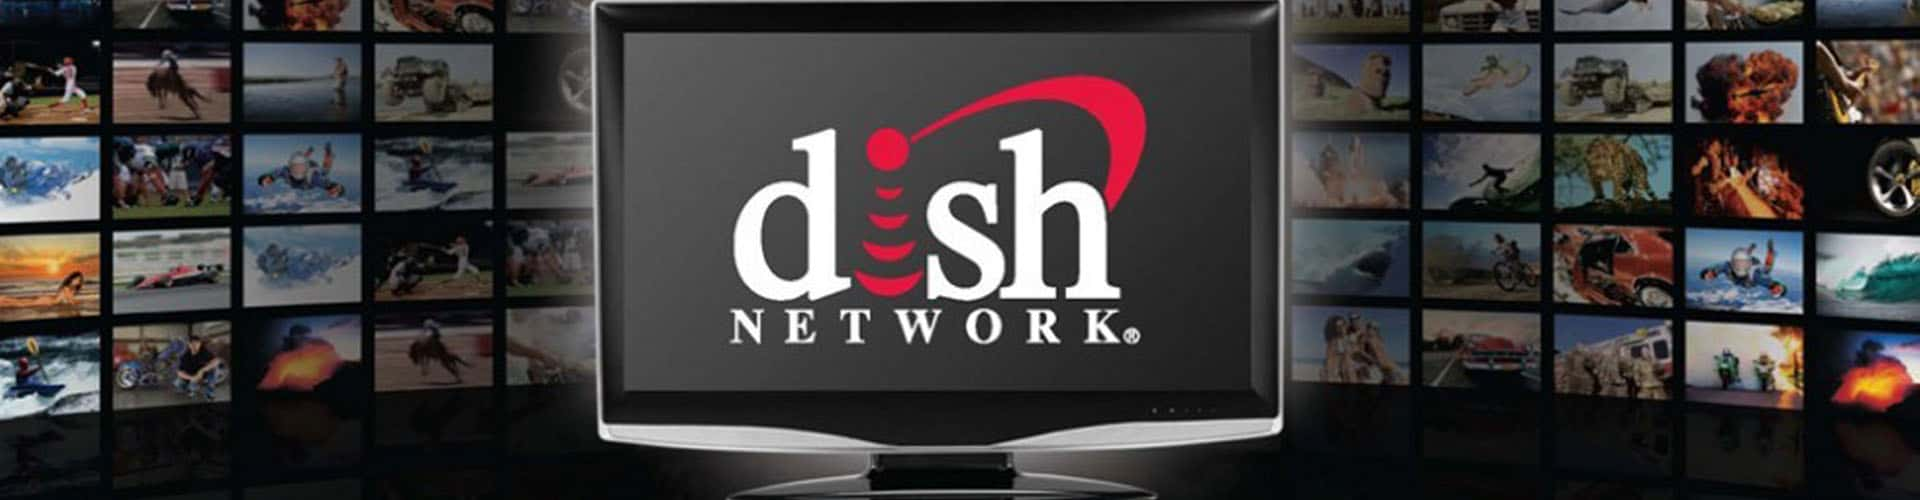 Can You Avoid The Dish Network Early Termination Fee?